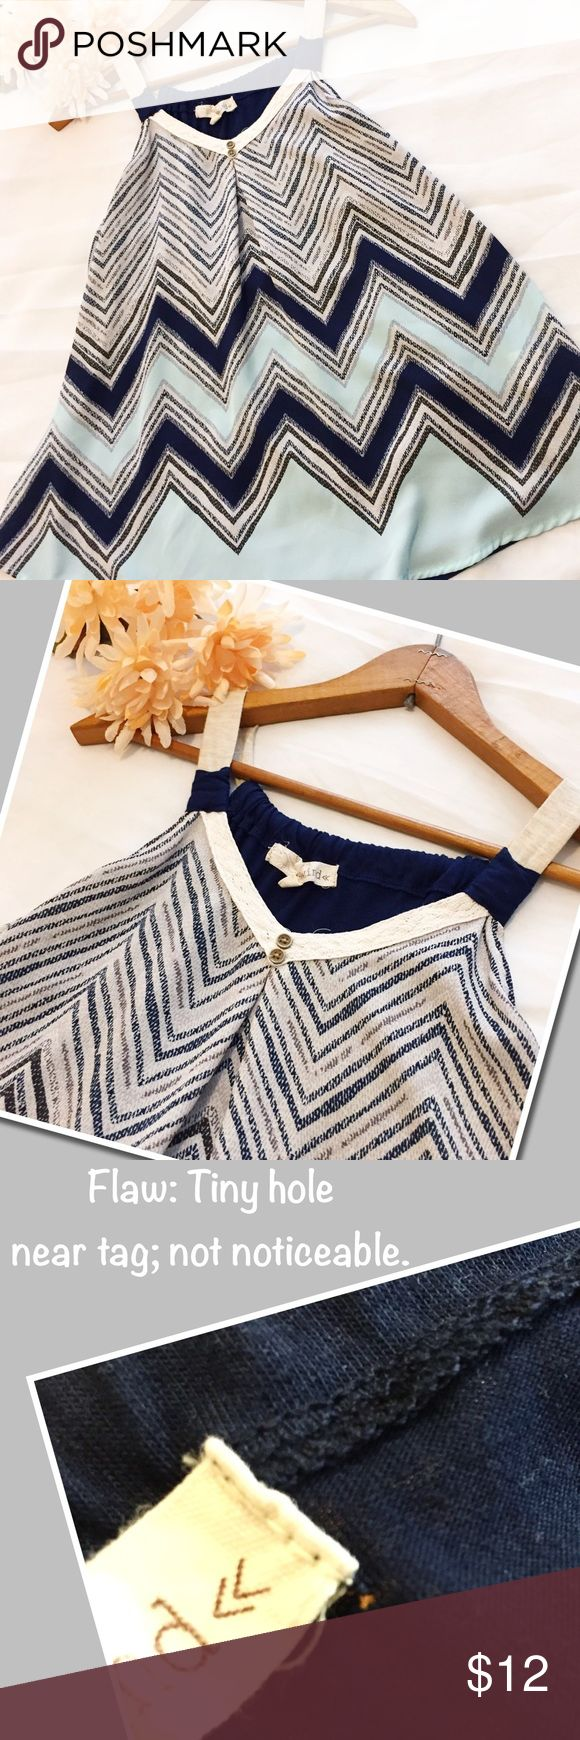 """Rewind 